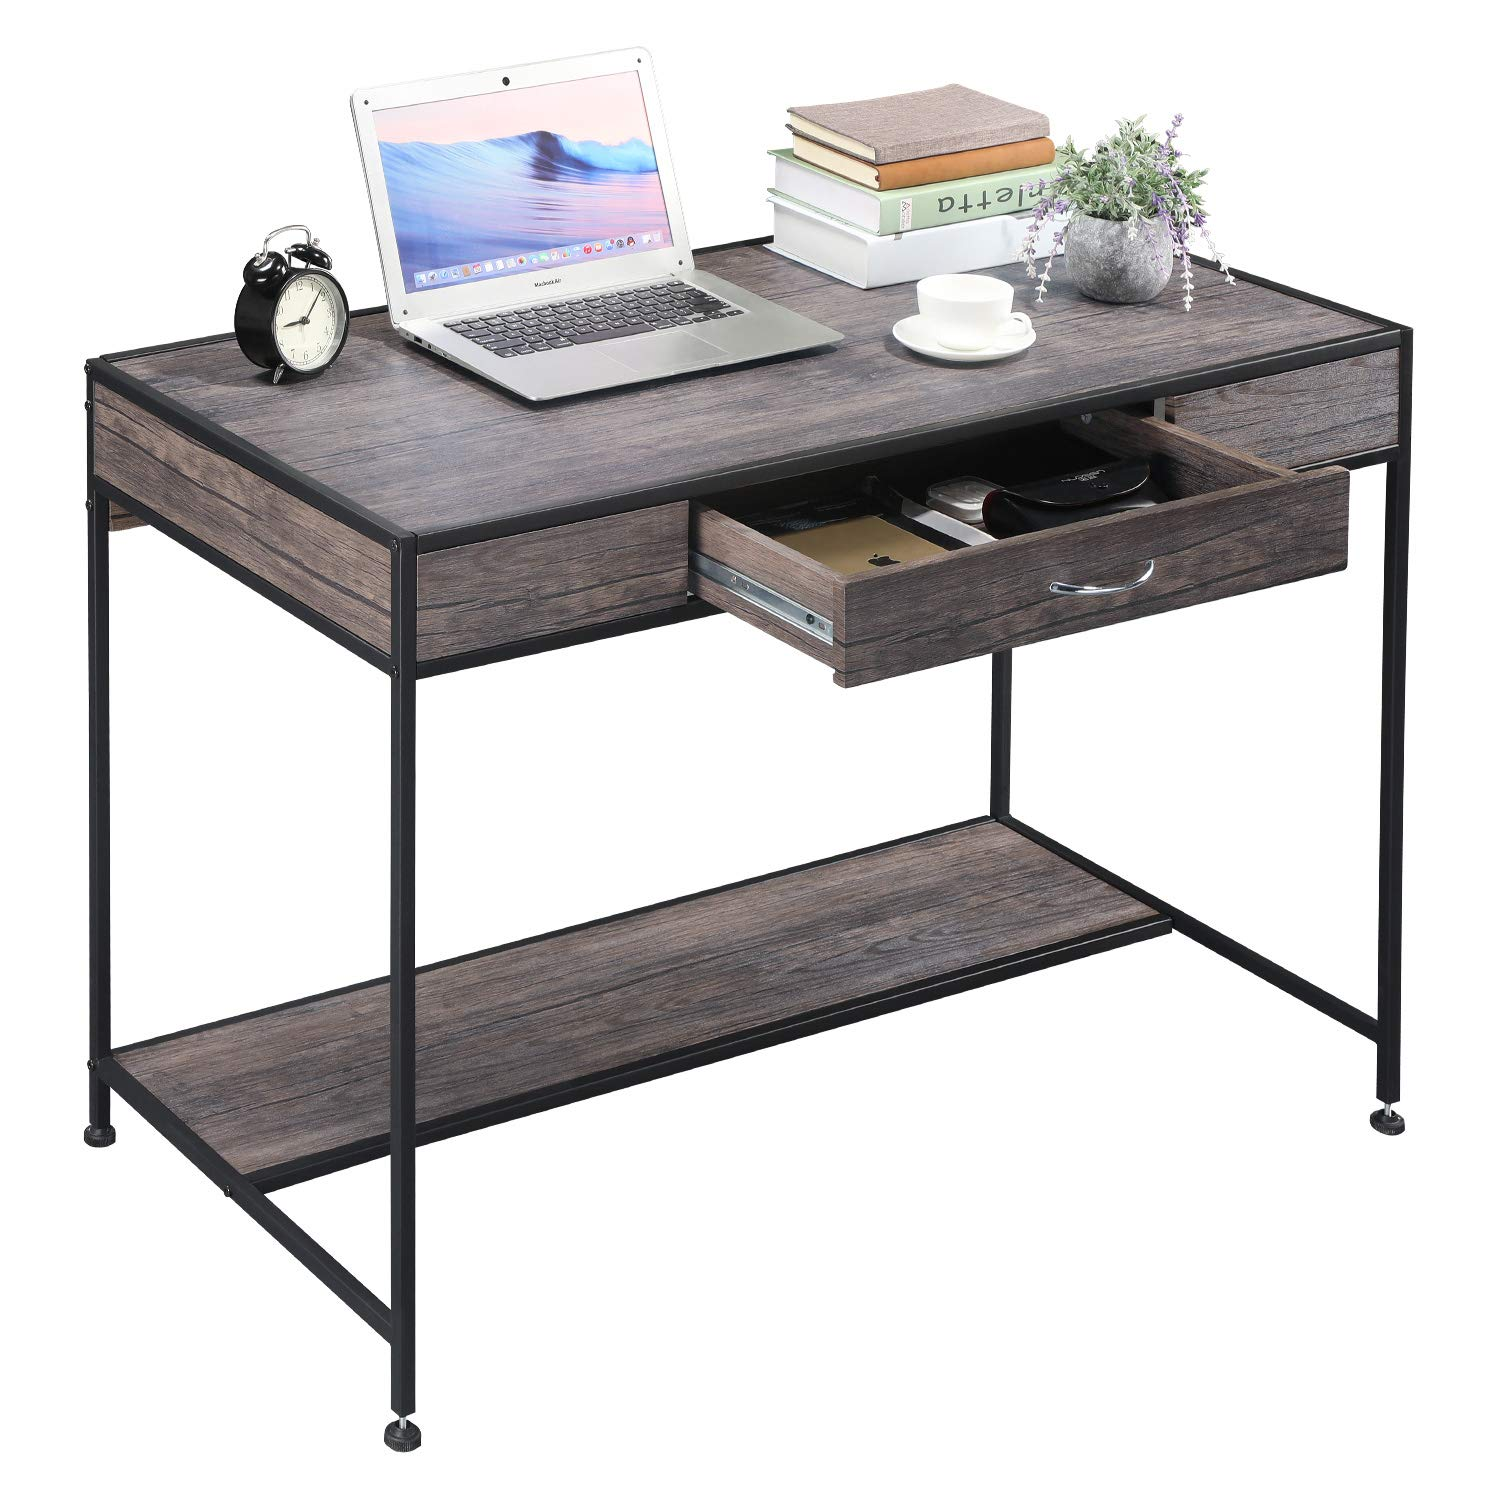 Aingoo Computer Writing Desk with Drawers,Home Office Rustic Metal MDF Wood Mid Century Large PC Table for Brown Farmhouse